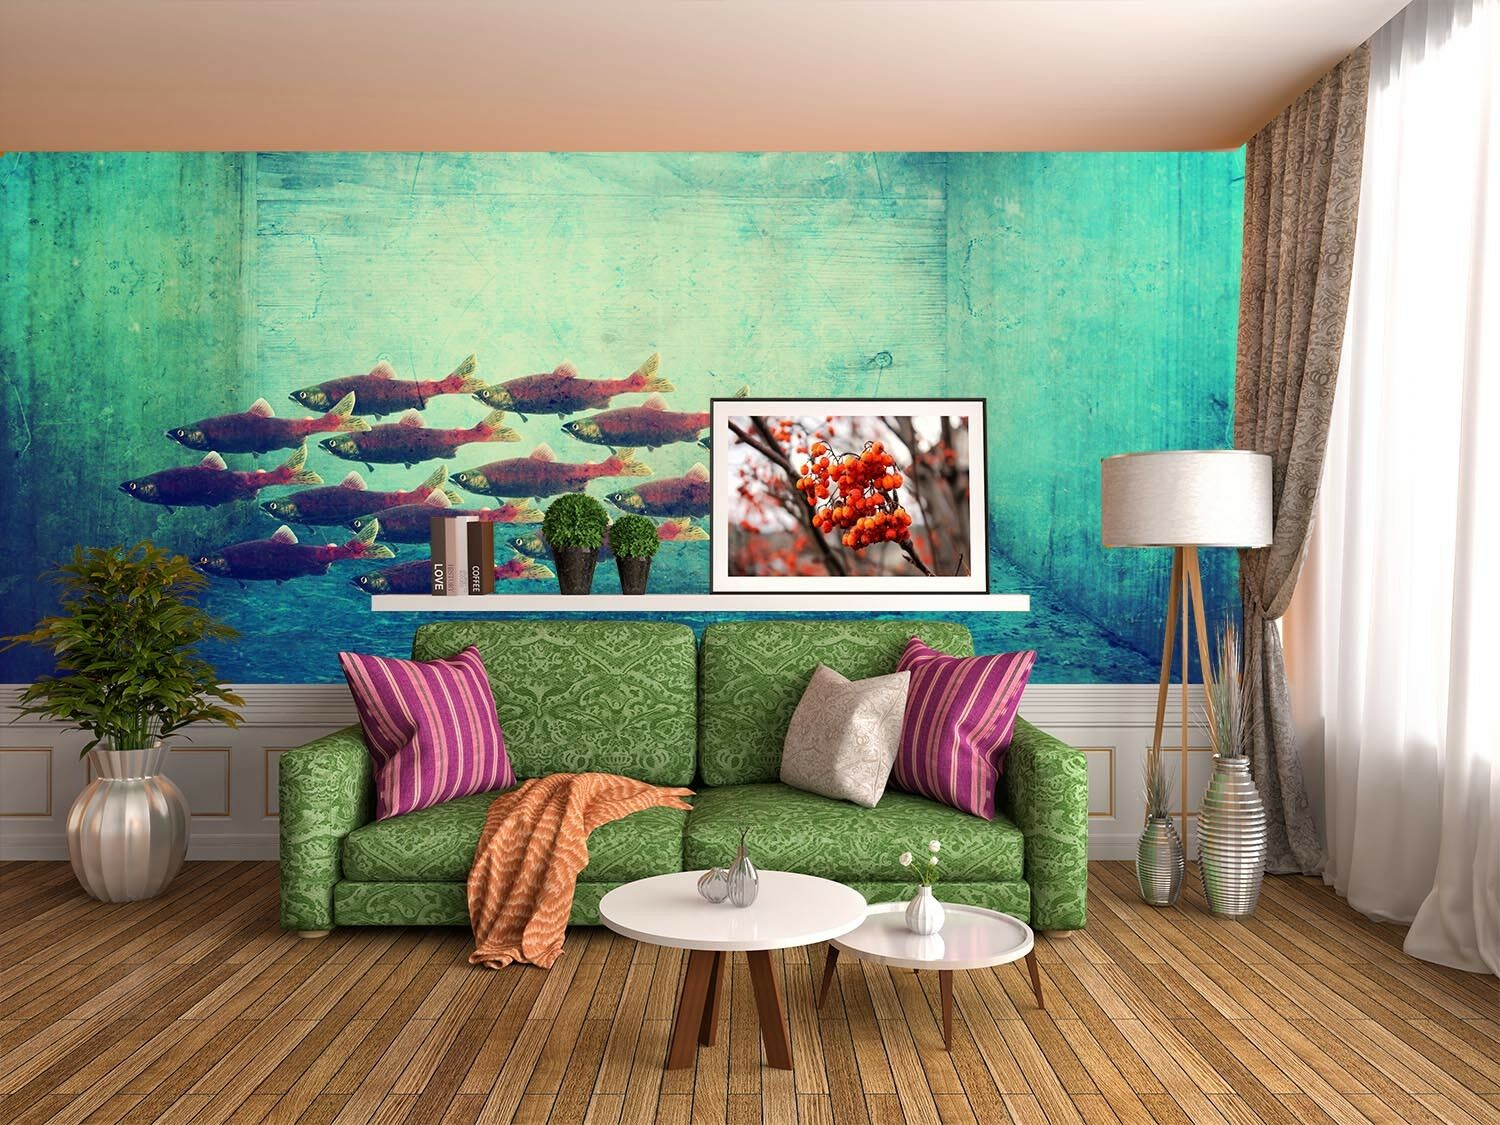 3D Fish Group Pond 563 Wall Paper Wall Print Decal Wall Deco Indoor Mural Lemon